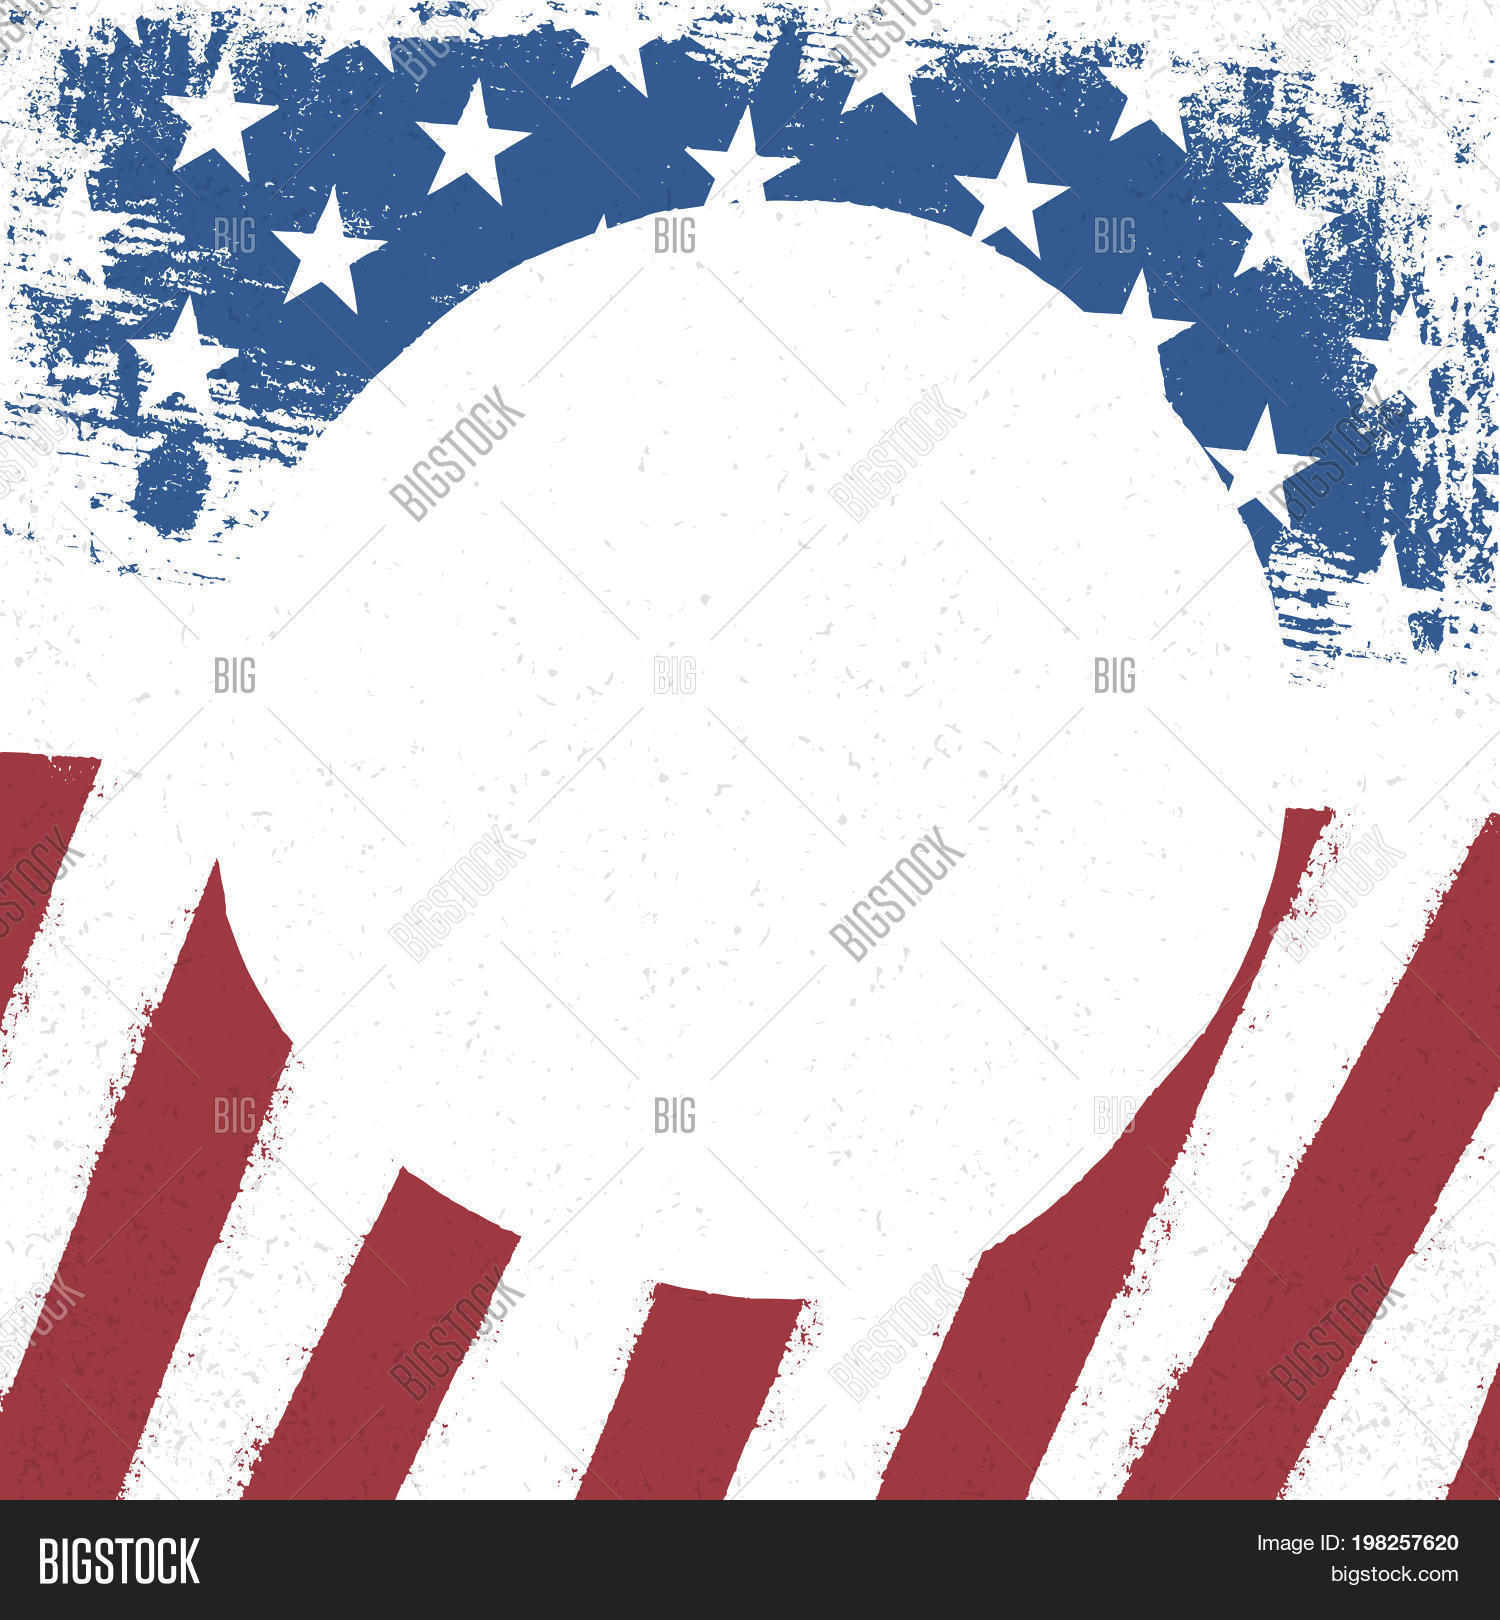 american flag image photo free trial bigstock